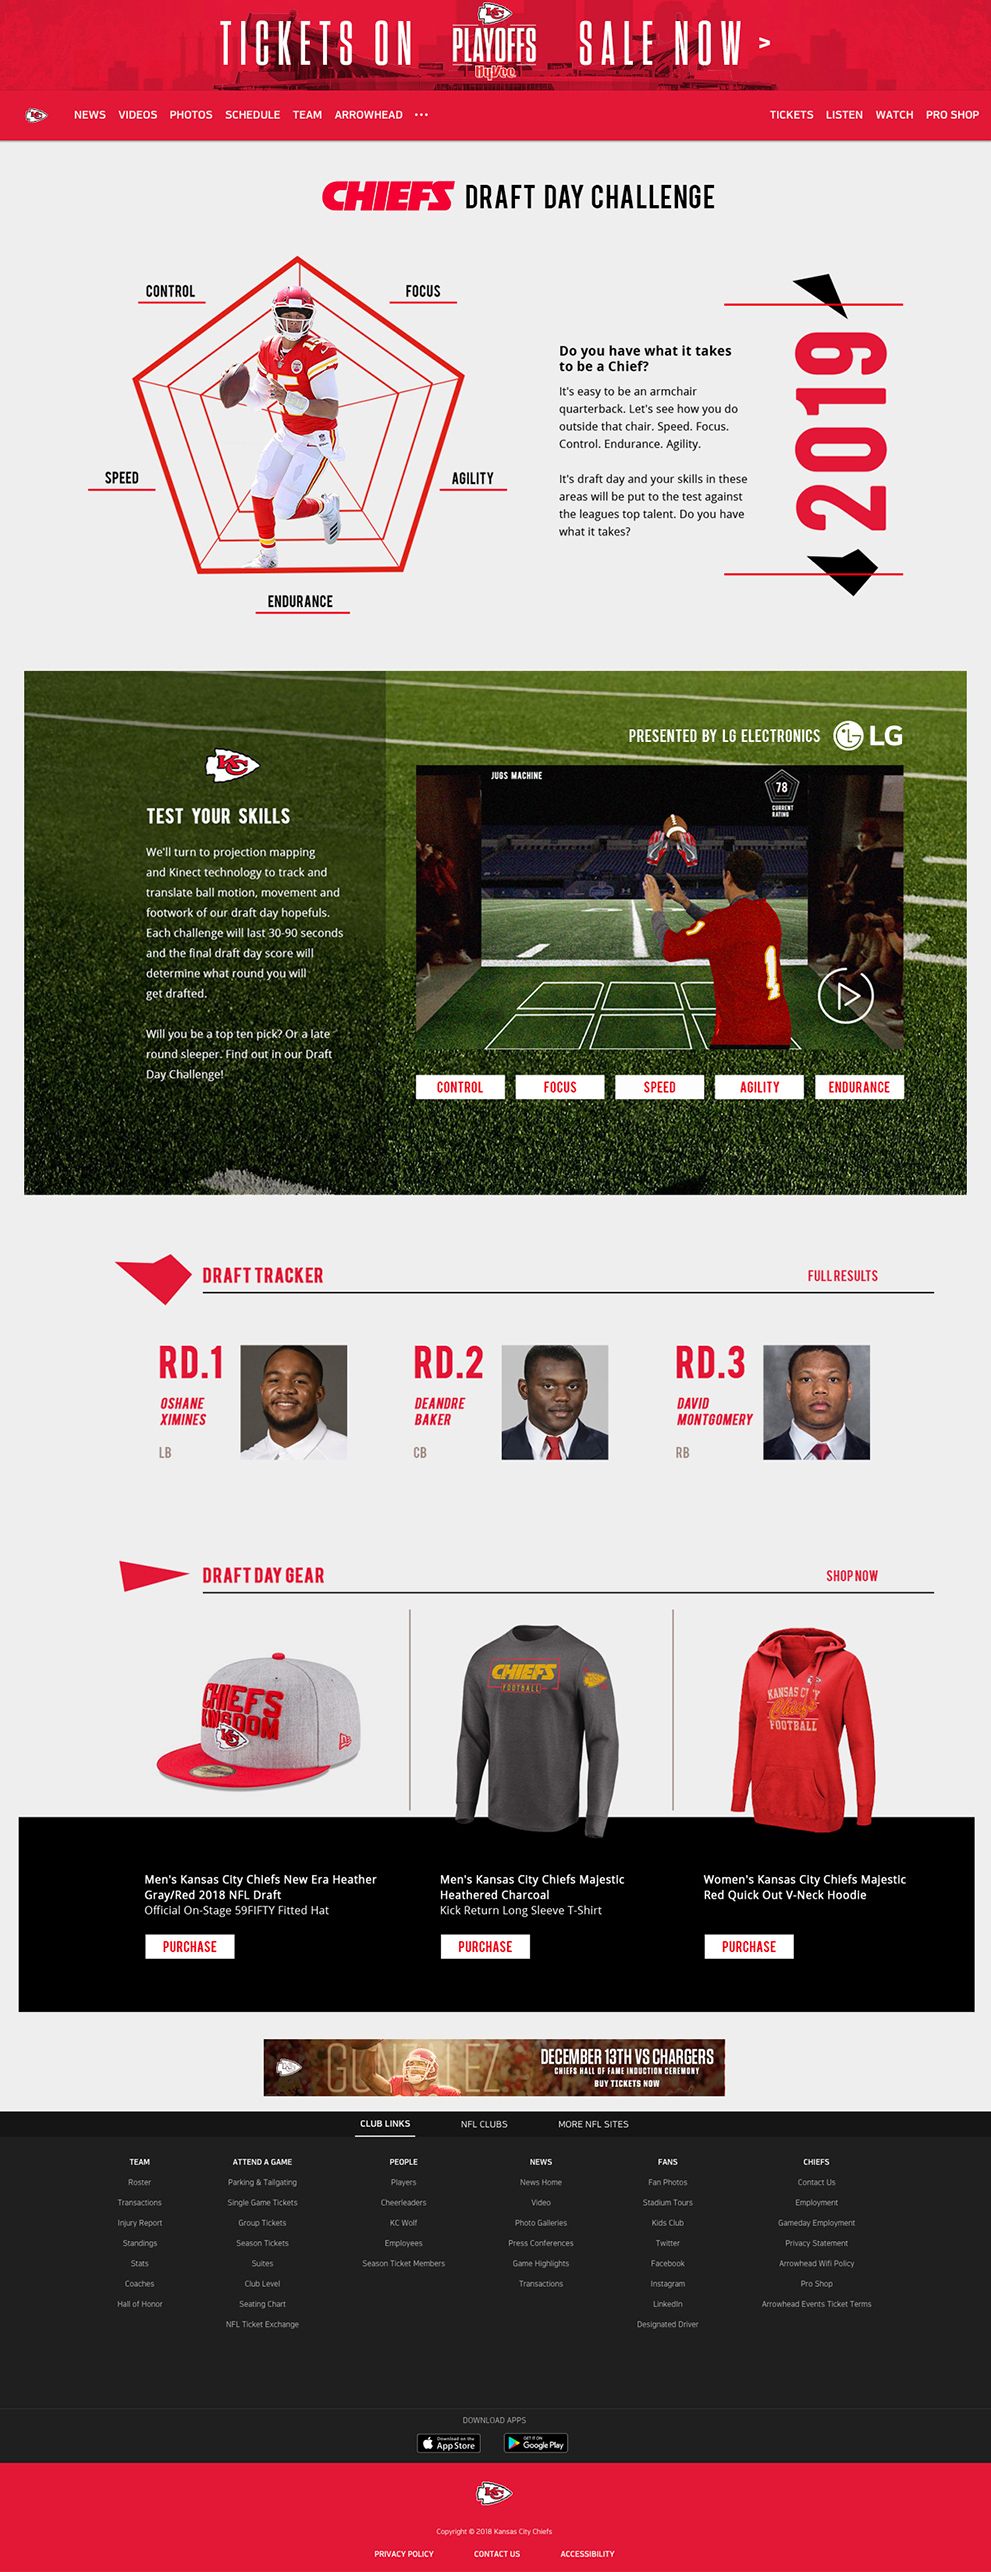 chiefs_draft_day_challenge_dot_com_frame